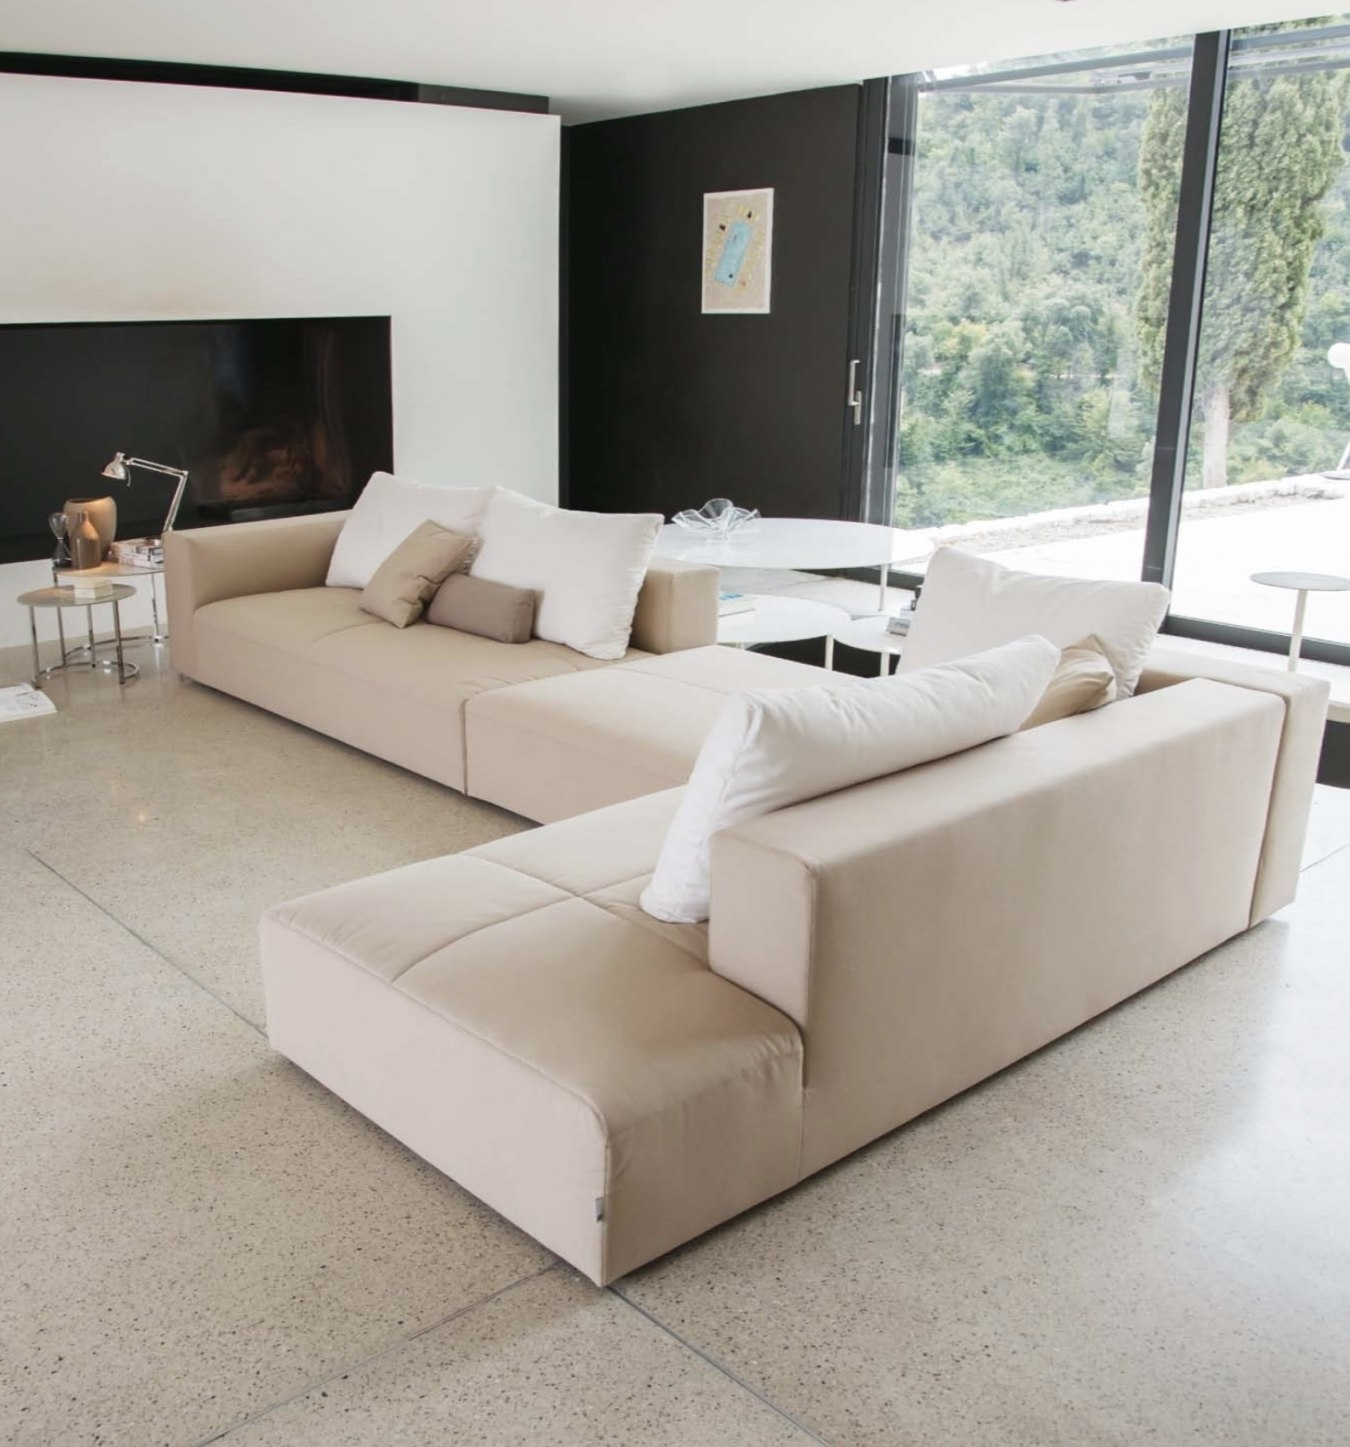 Backless Sectional Sofa Misskellybra Sofa Site With Backless Sectional Sofa (#8 of 12)